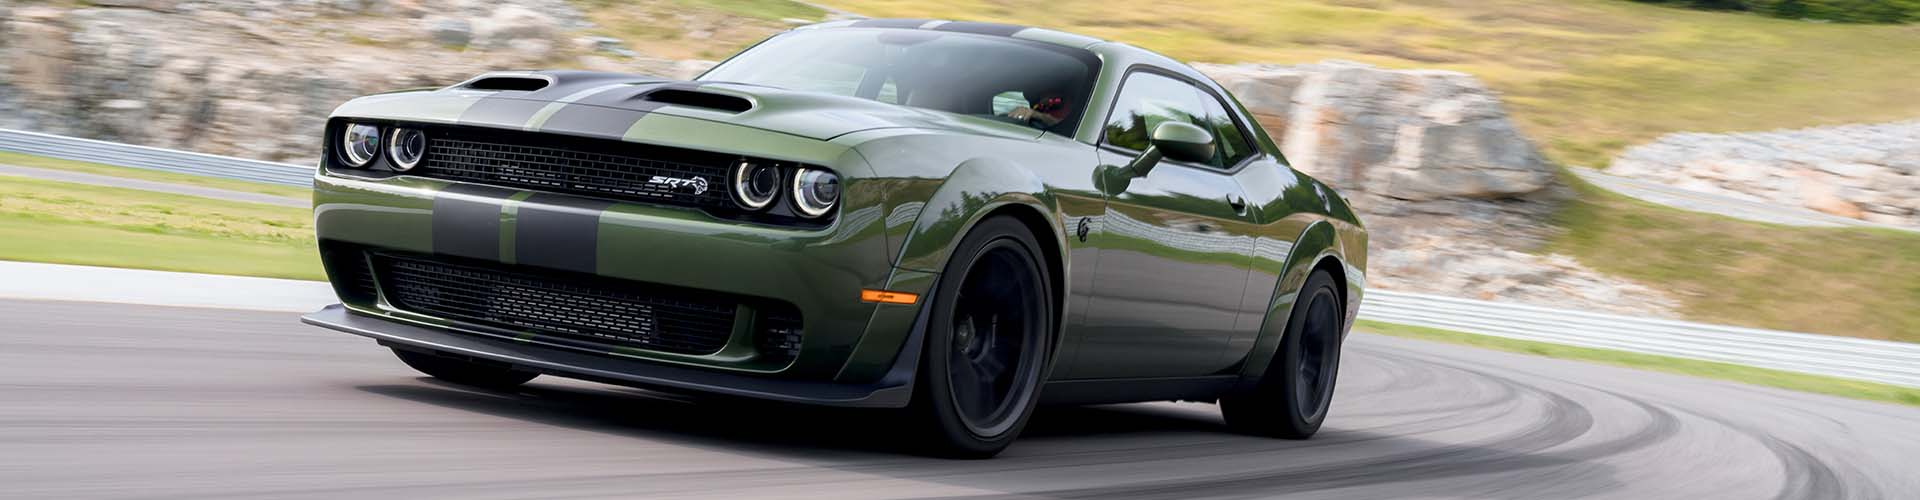 2020 Dodge Challenger Srt Engine